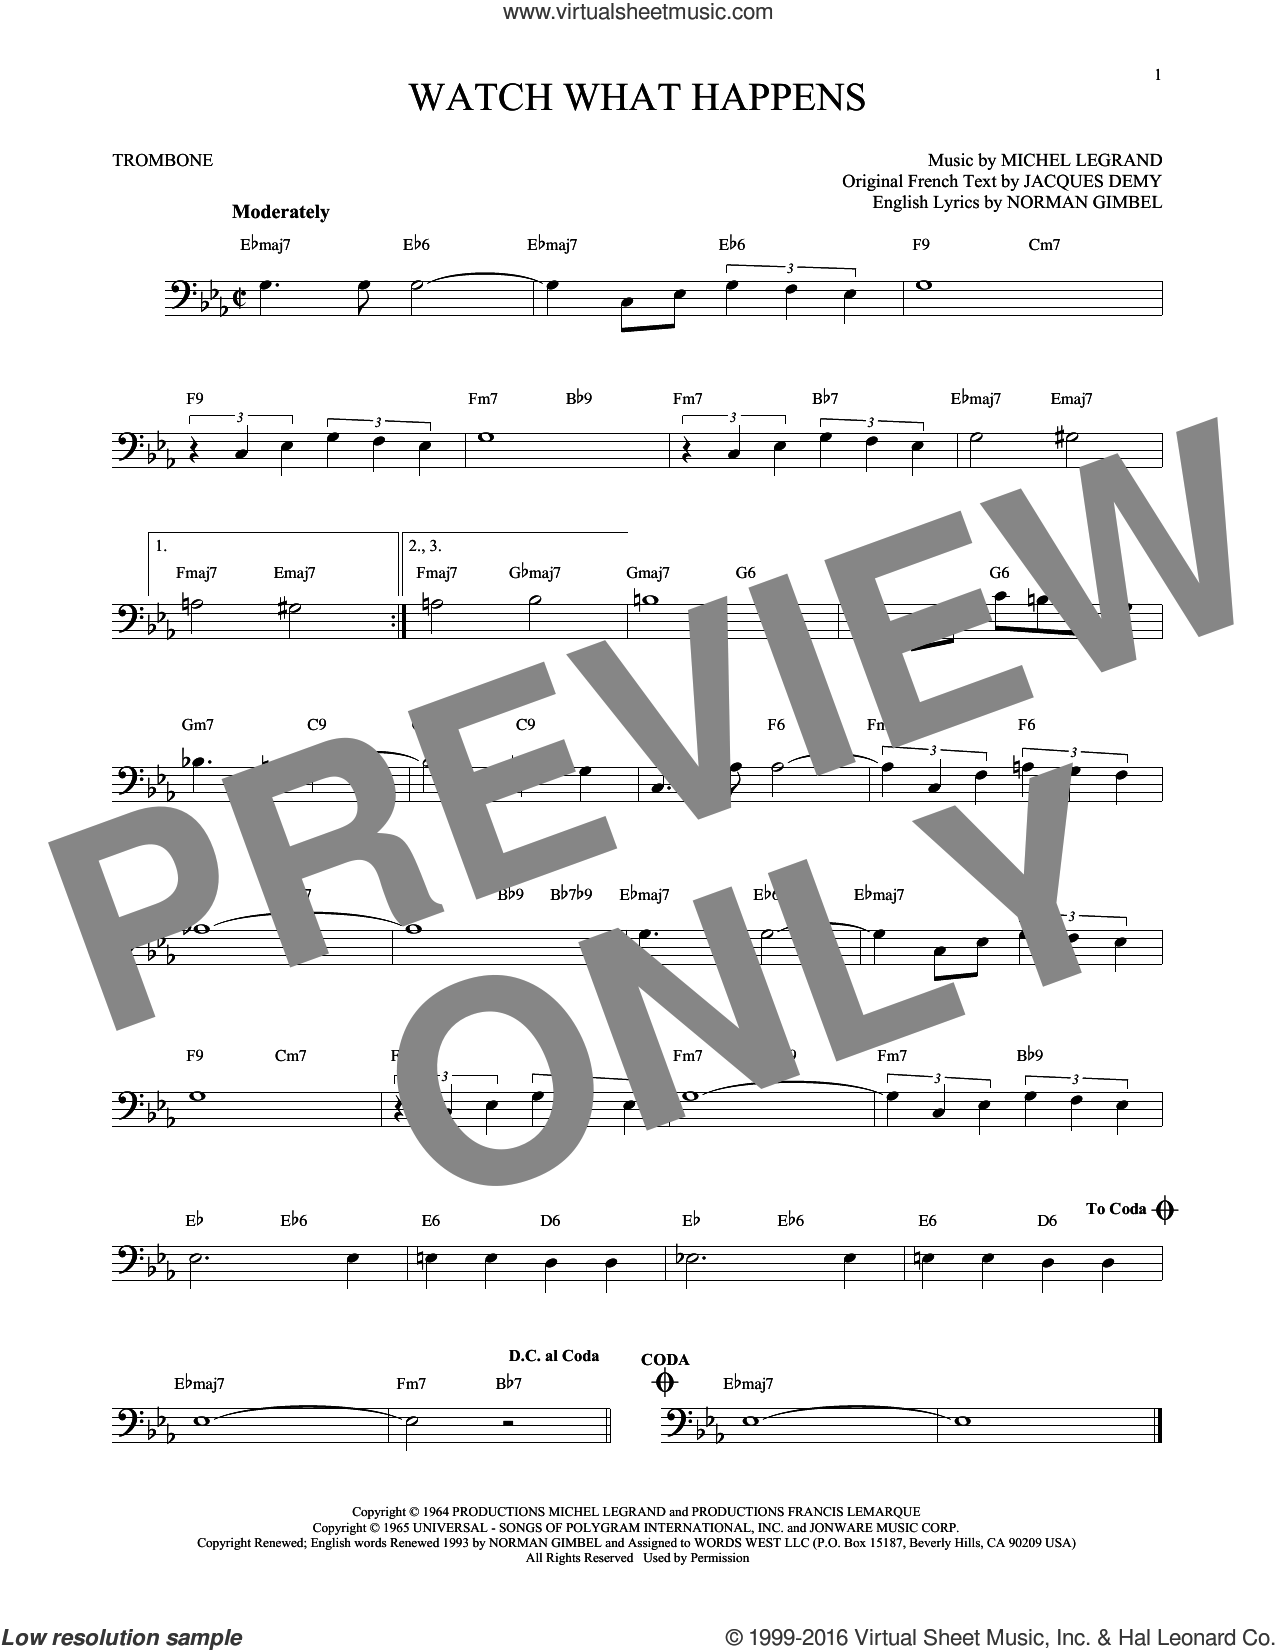 Watch What Happens sheet music for trombone solo by Norman Gimbel and Michel LeGrand, intermediate skill level